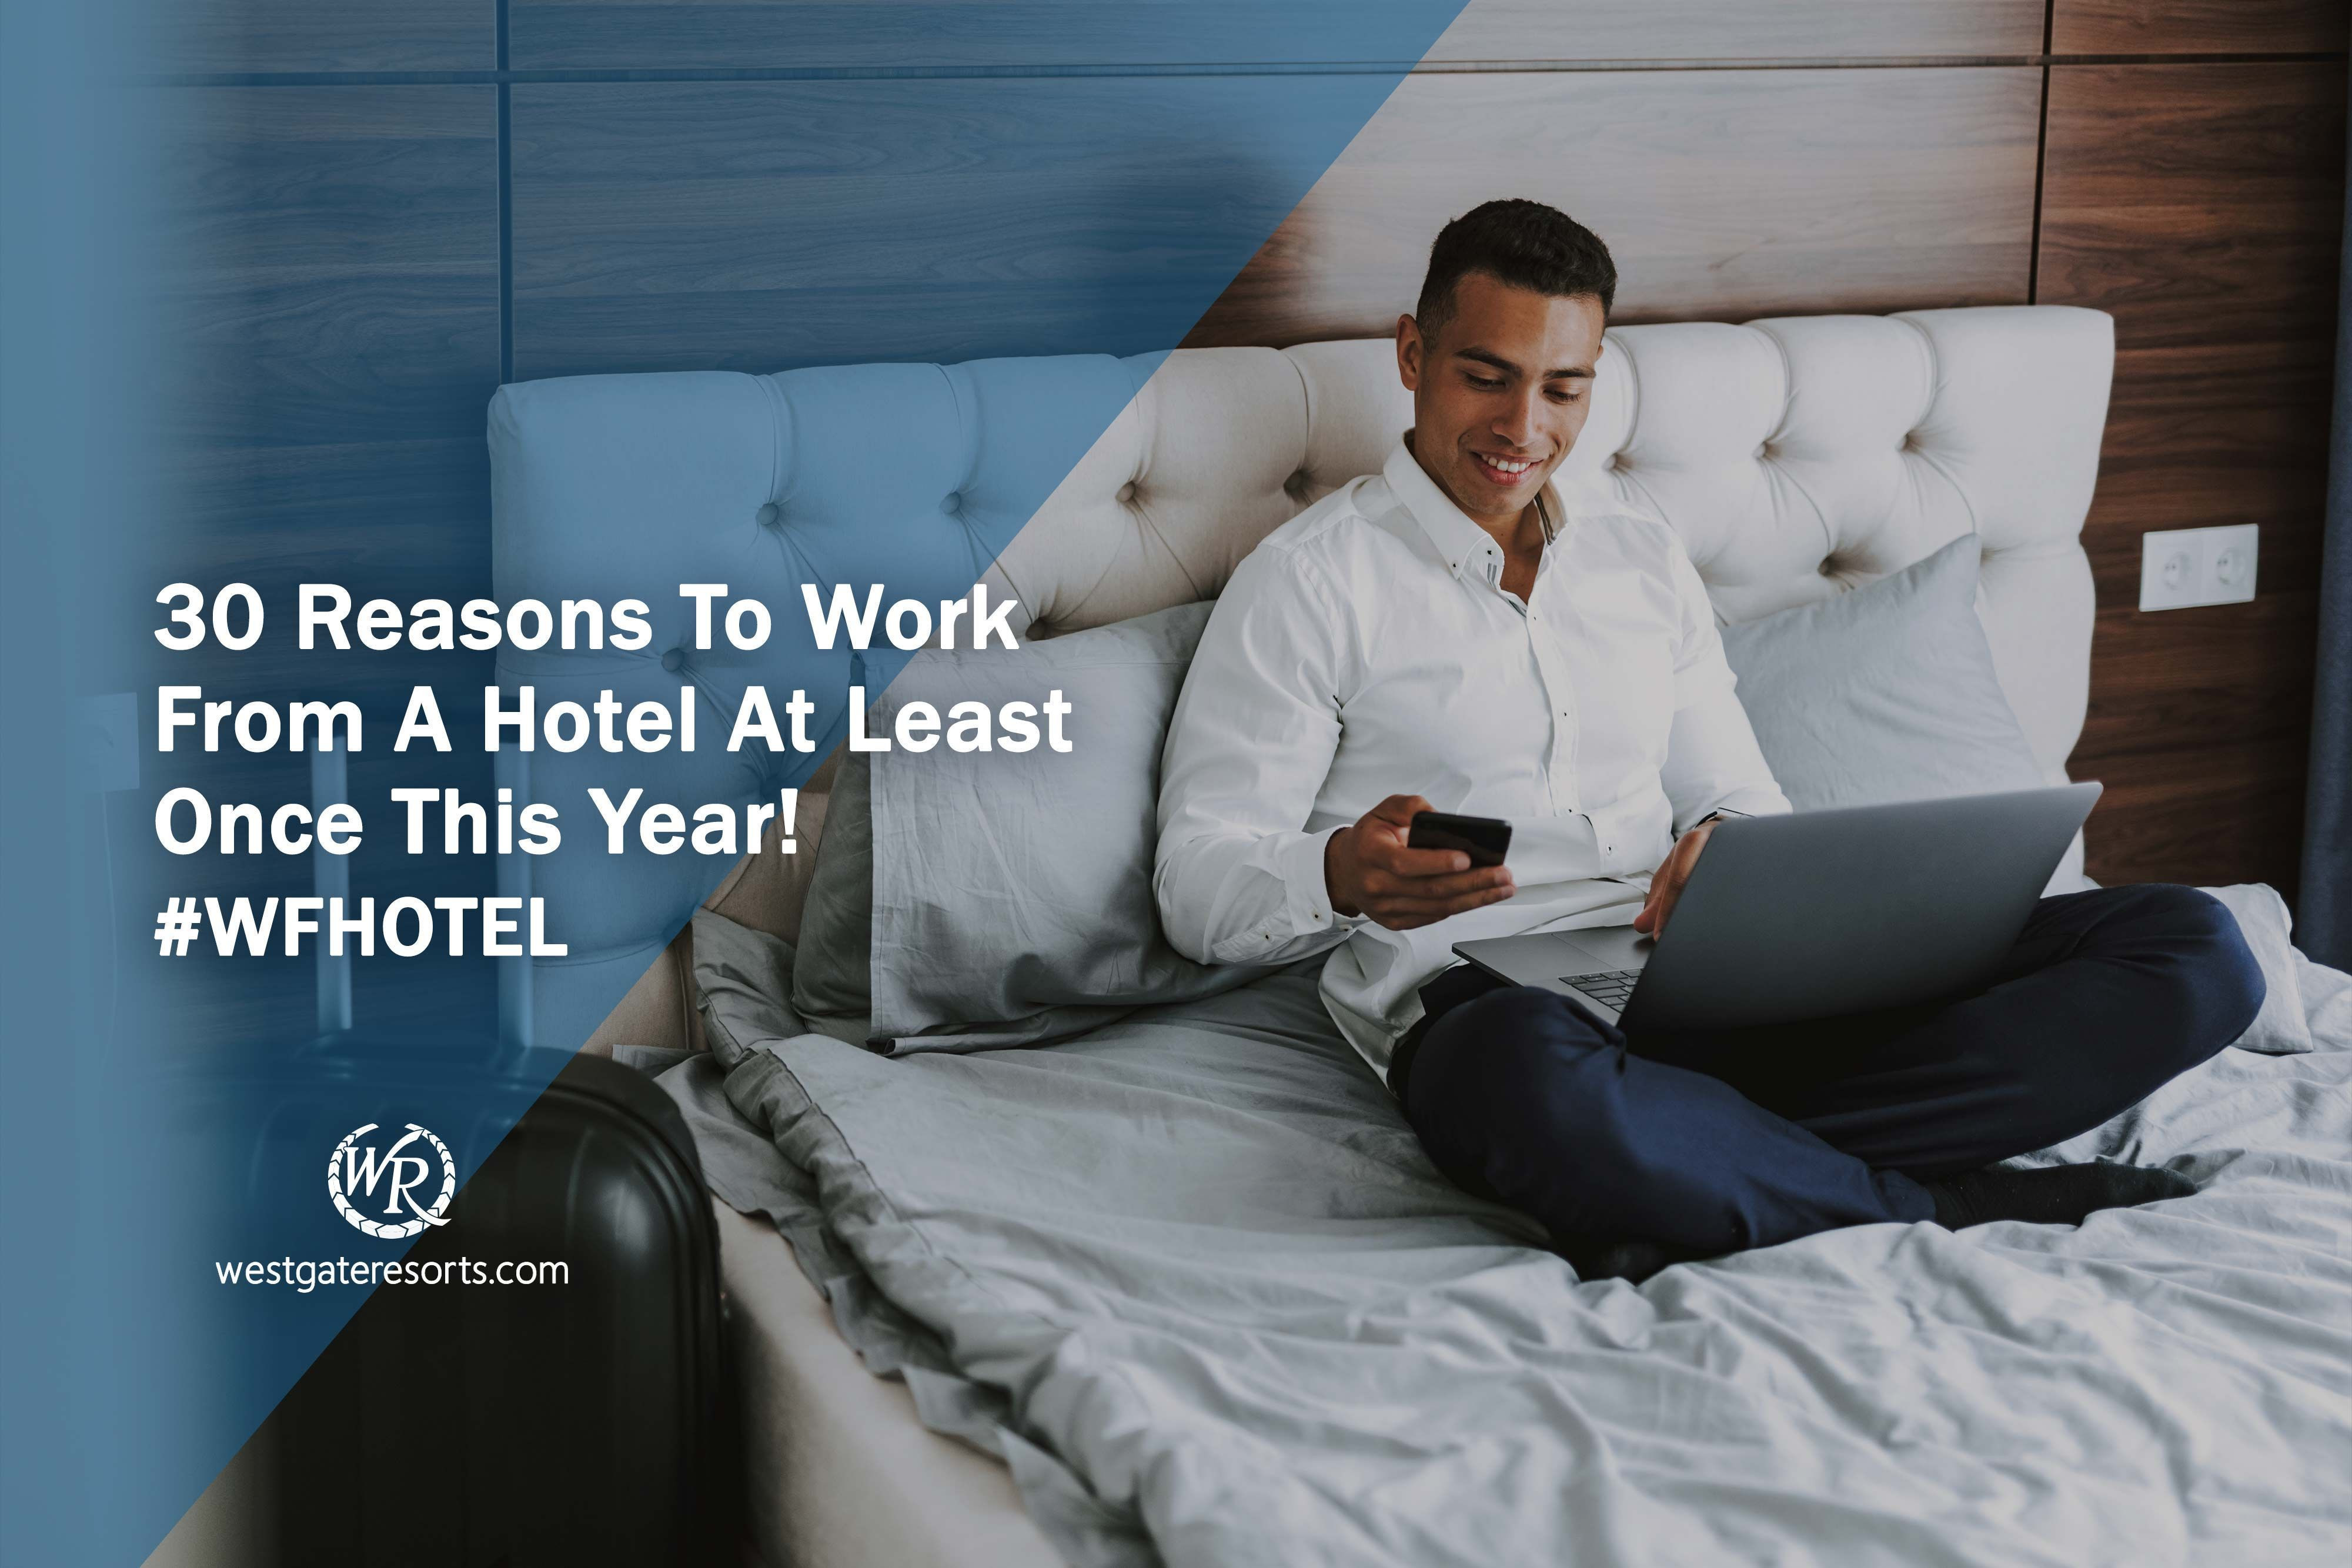 30 Reasons To Work From A Hotel At Least Once This Year! #WFHOTEL